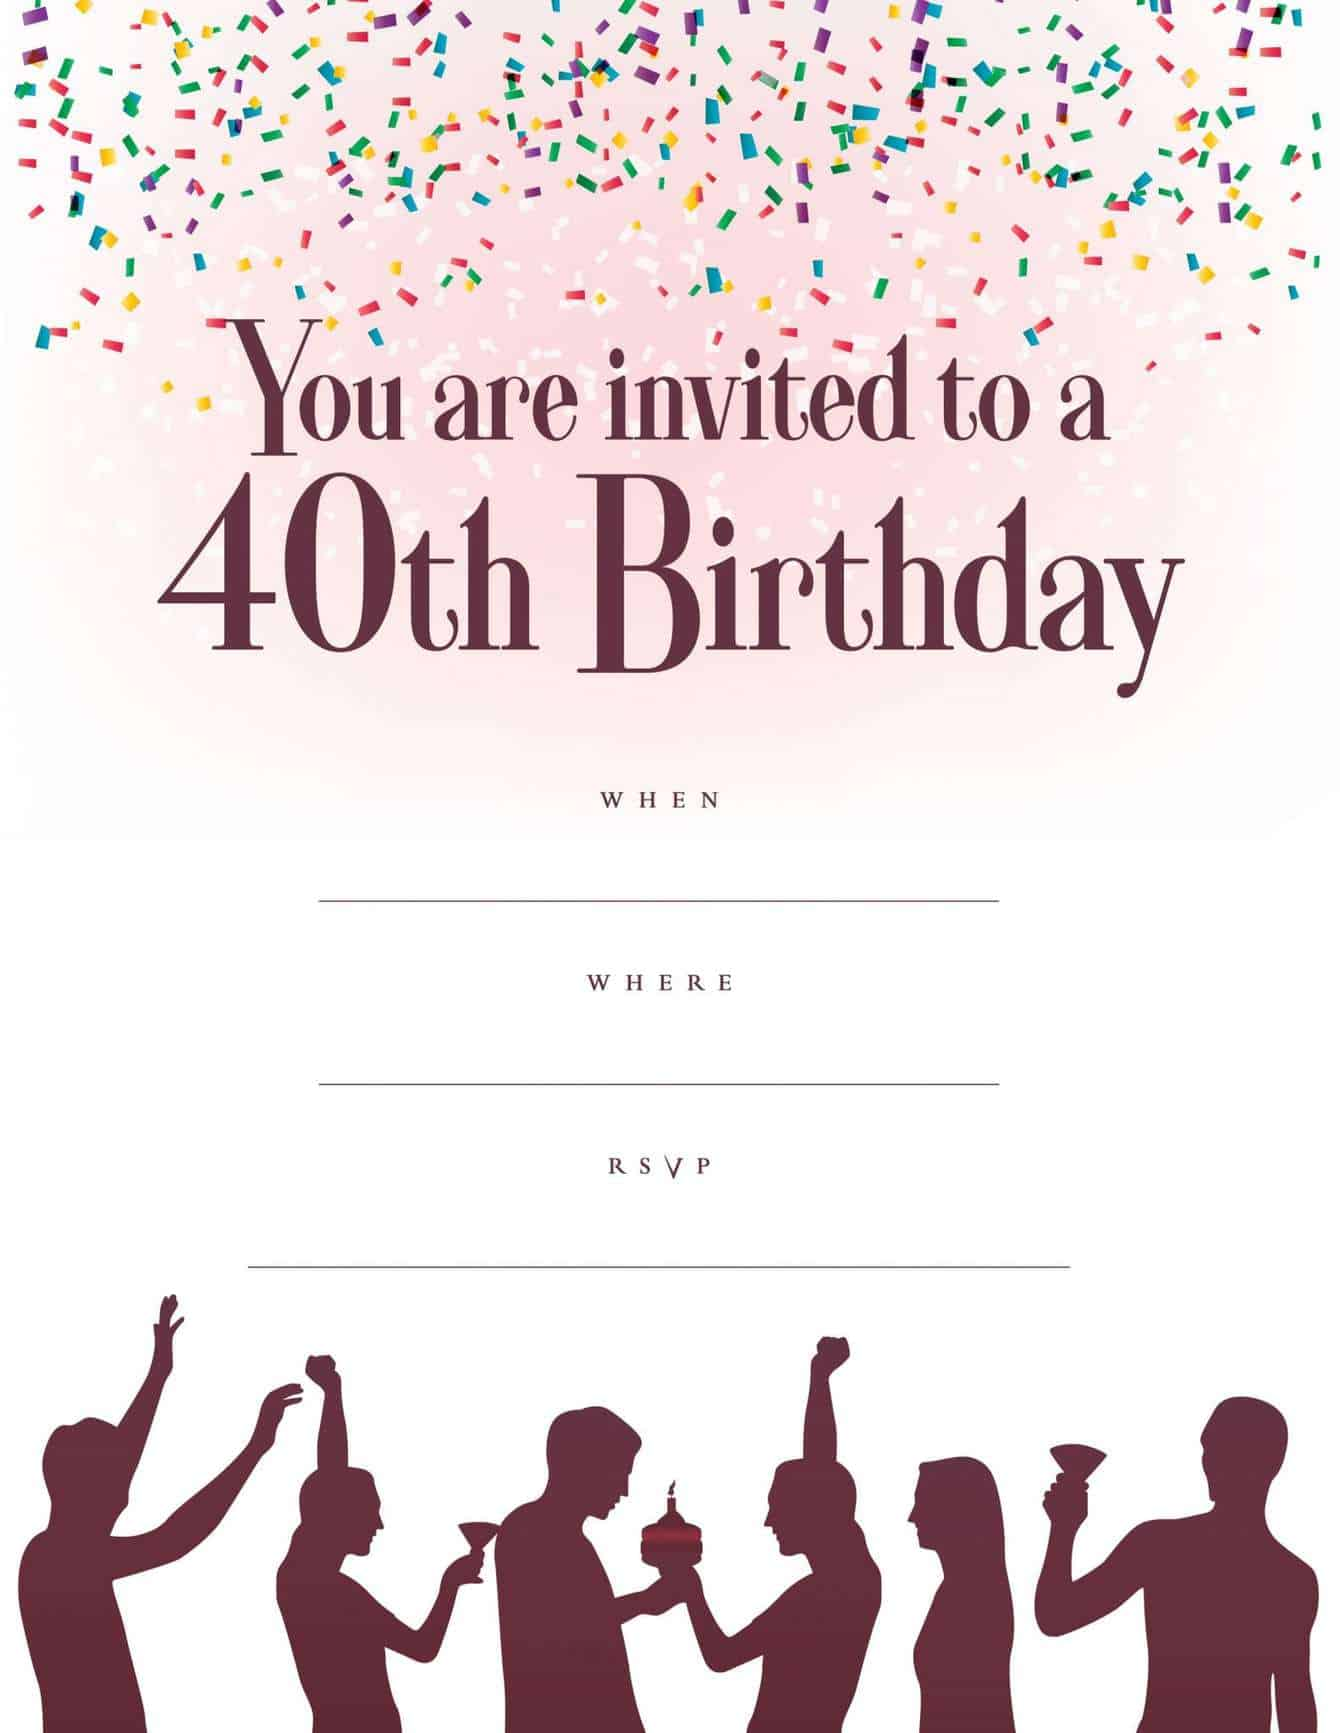 Elvis presley trivia game 43 images class teacher famous elvis birthday party invitations pictures filmwisefo